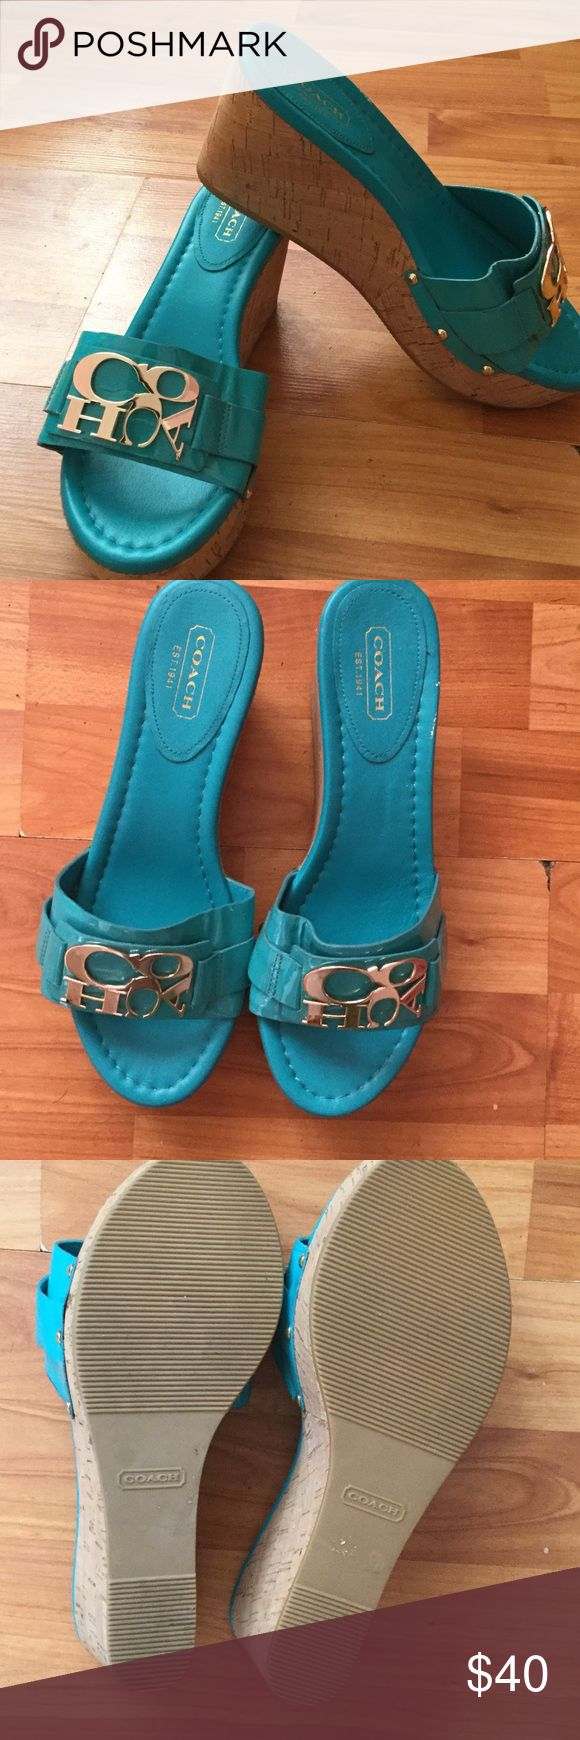 Coach Teal Turquoise Wedge Sandal Coach Teal Turquoise Wedge Sandal that have never been worn. Cork wedge heel with silver coach logo. Heels or 3 to 4 inches and height size 6. Coach Shoes Wedges